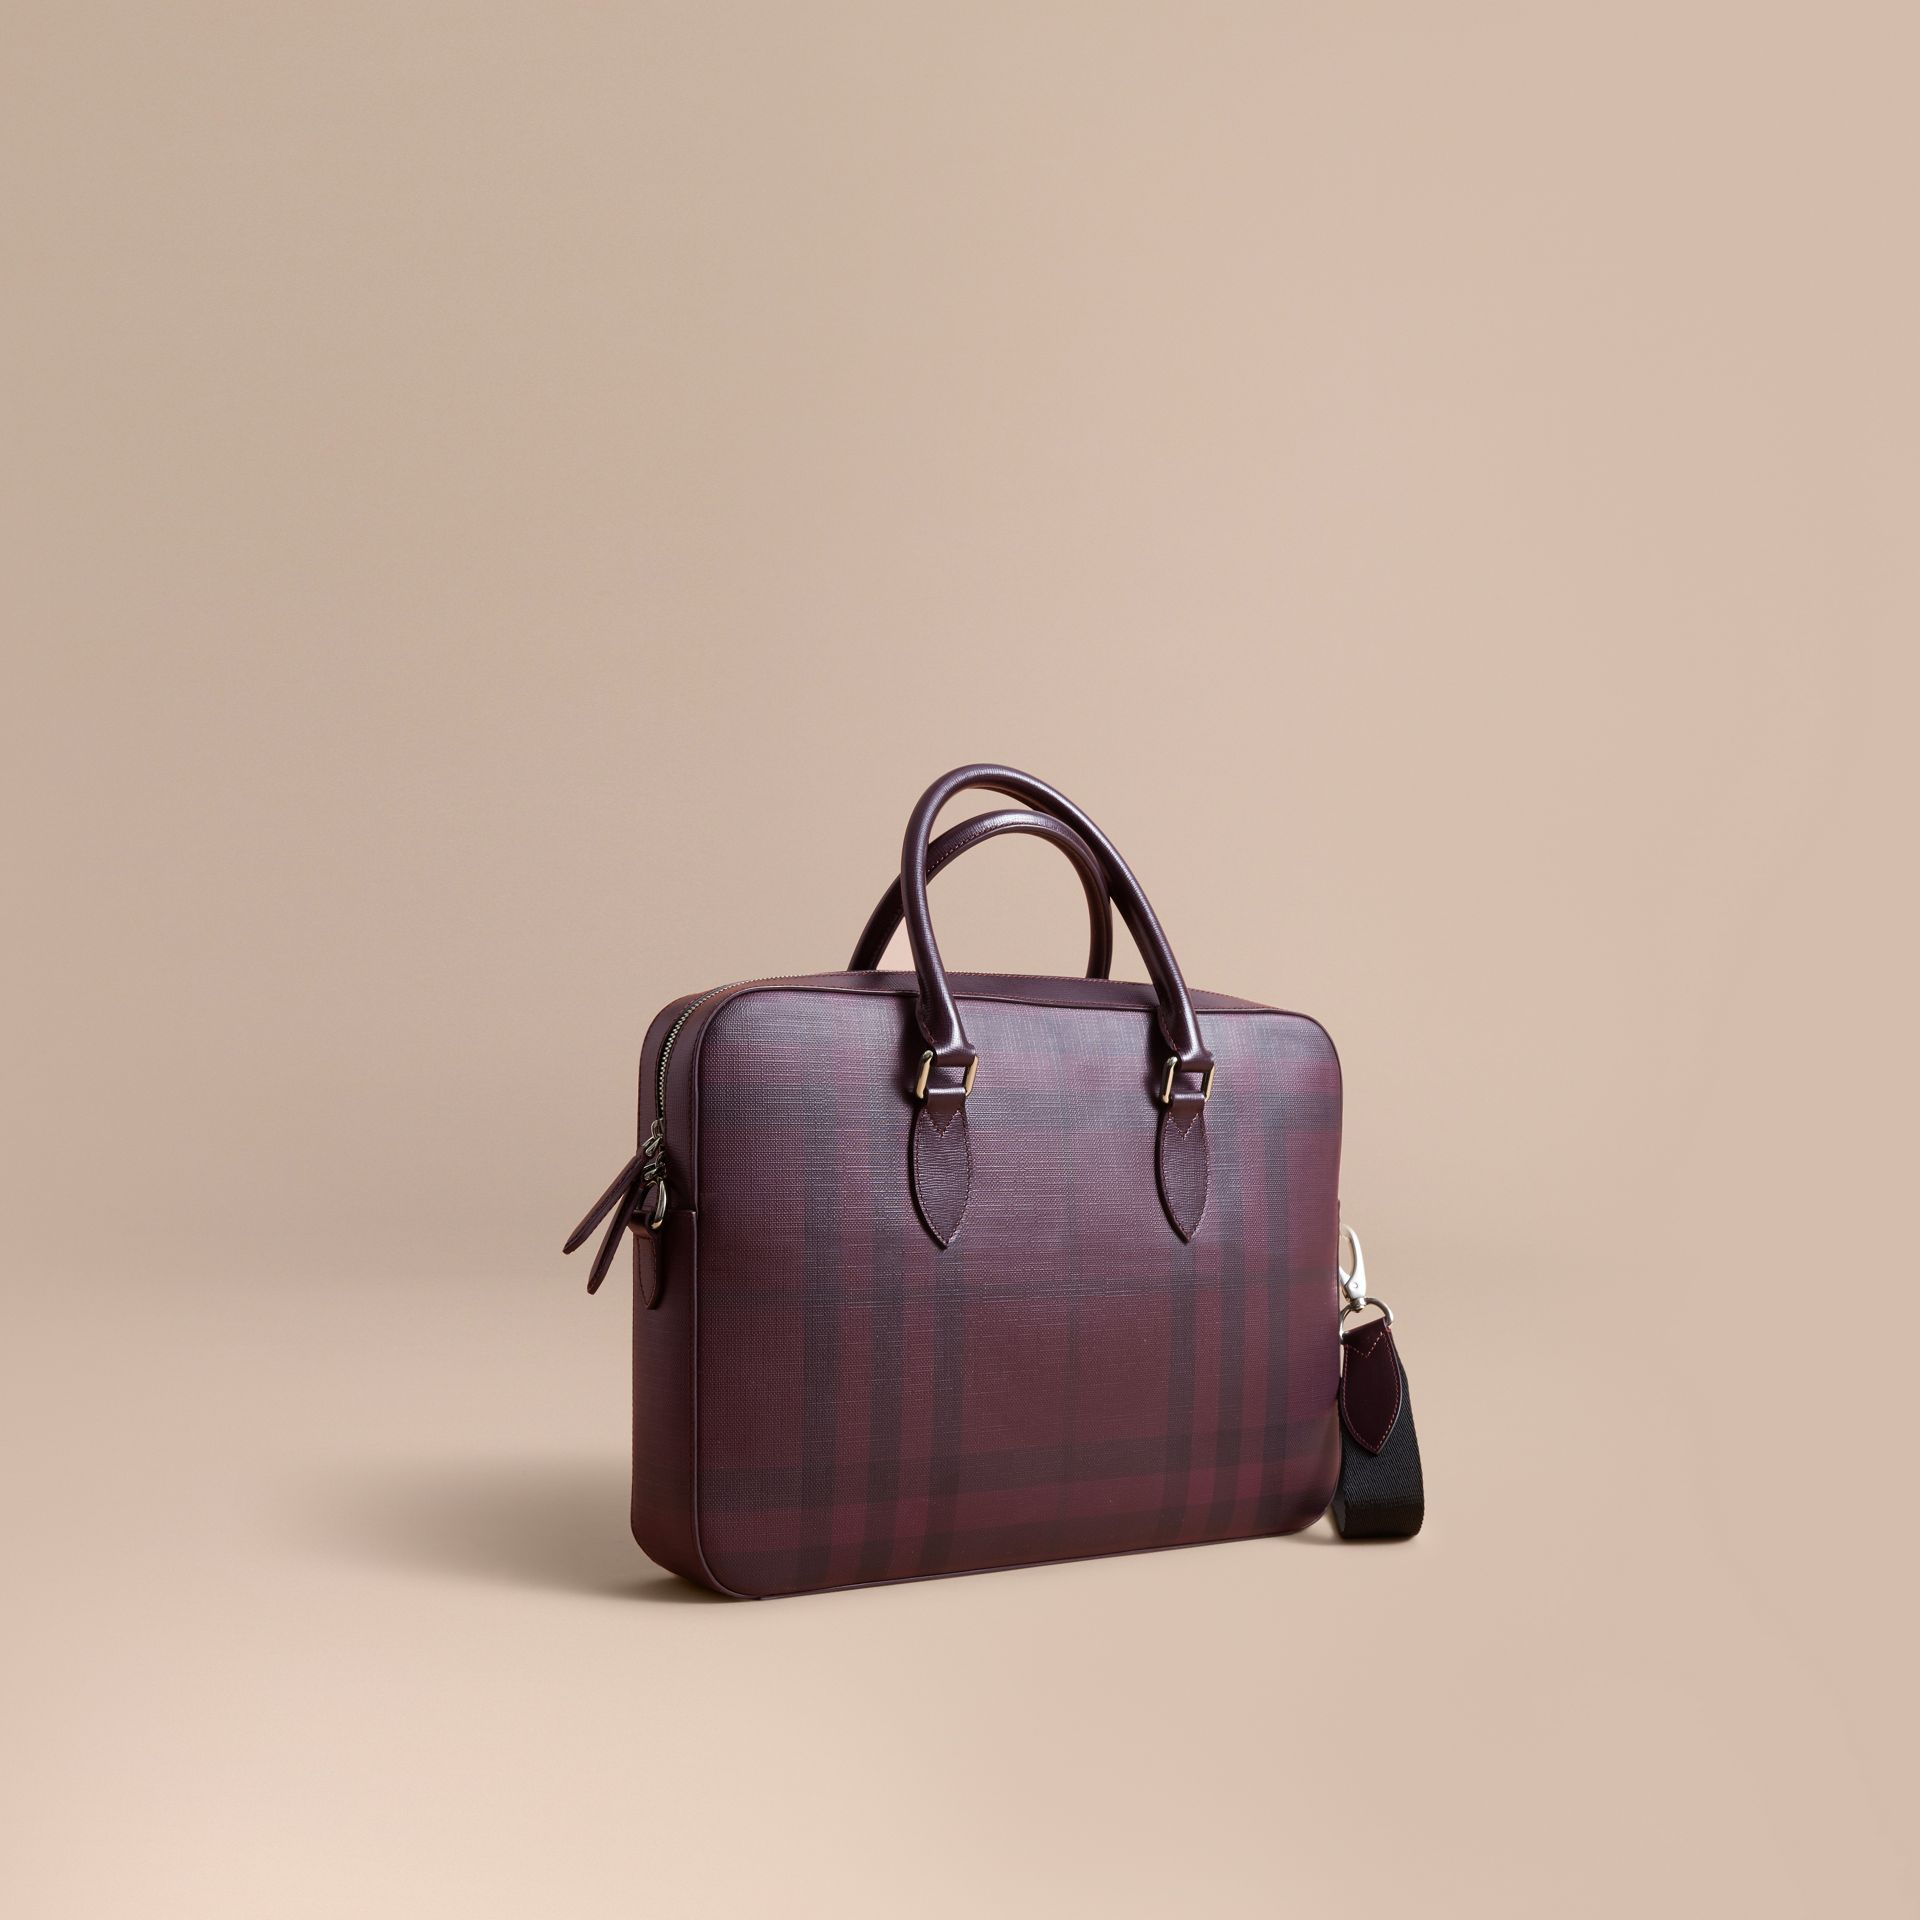 Medium Leather Trim London Check Briefcase in Deep Claret - Men | Burberry Canada - gallery image 1